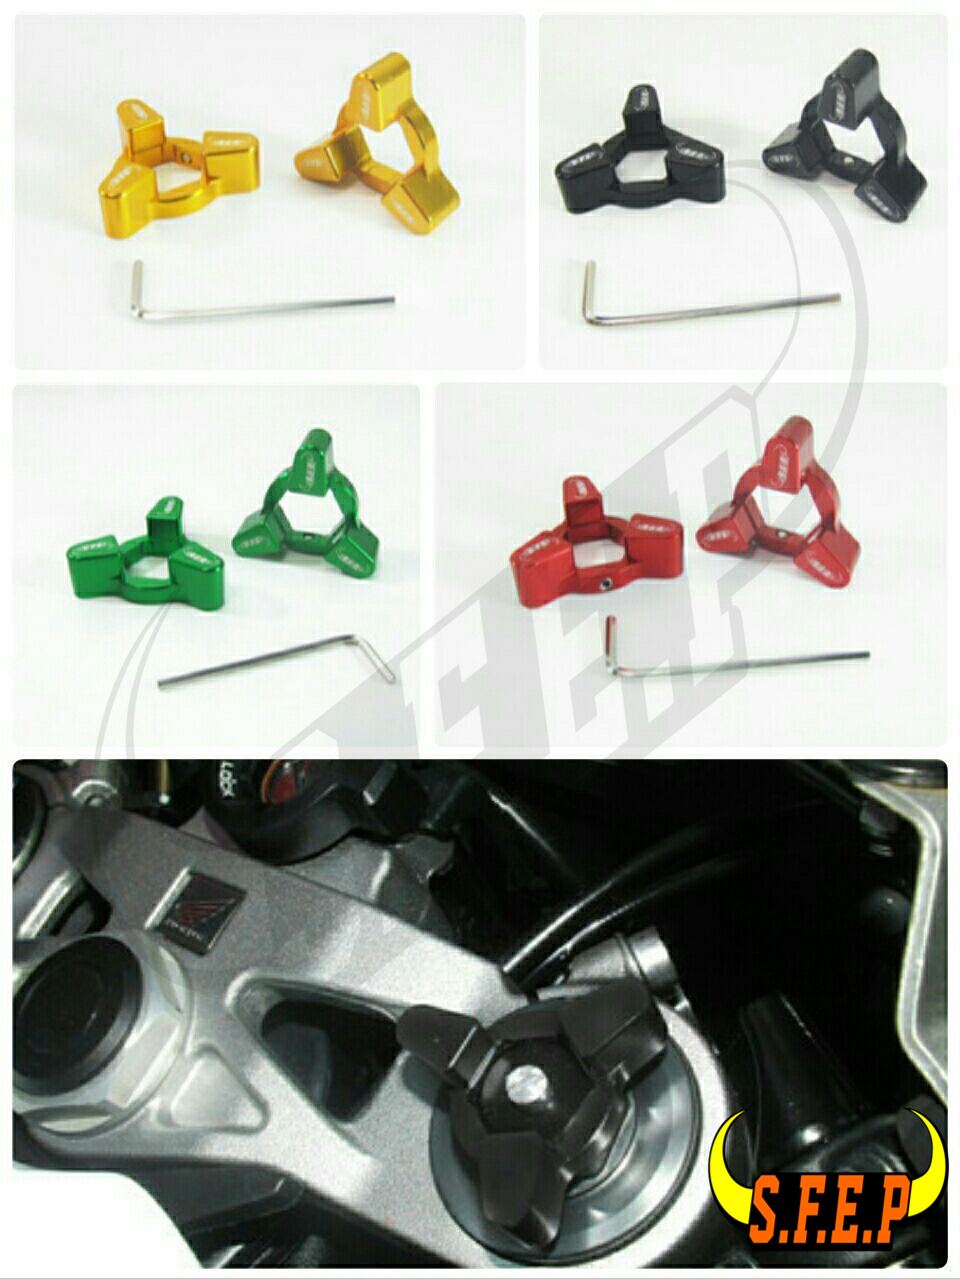 Motorcycle CNC Fork Preload Adjusters For Ducati Streetfighter 09-10/ 1198 09-10/ 848 07-10/ 1098 07-08